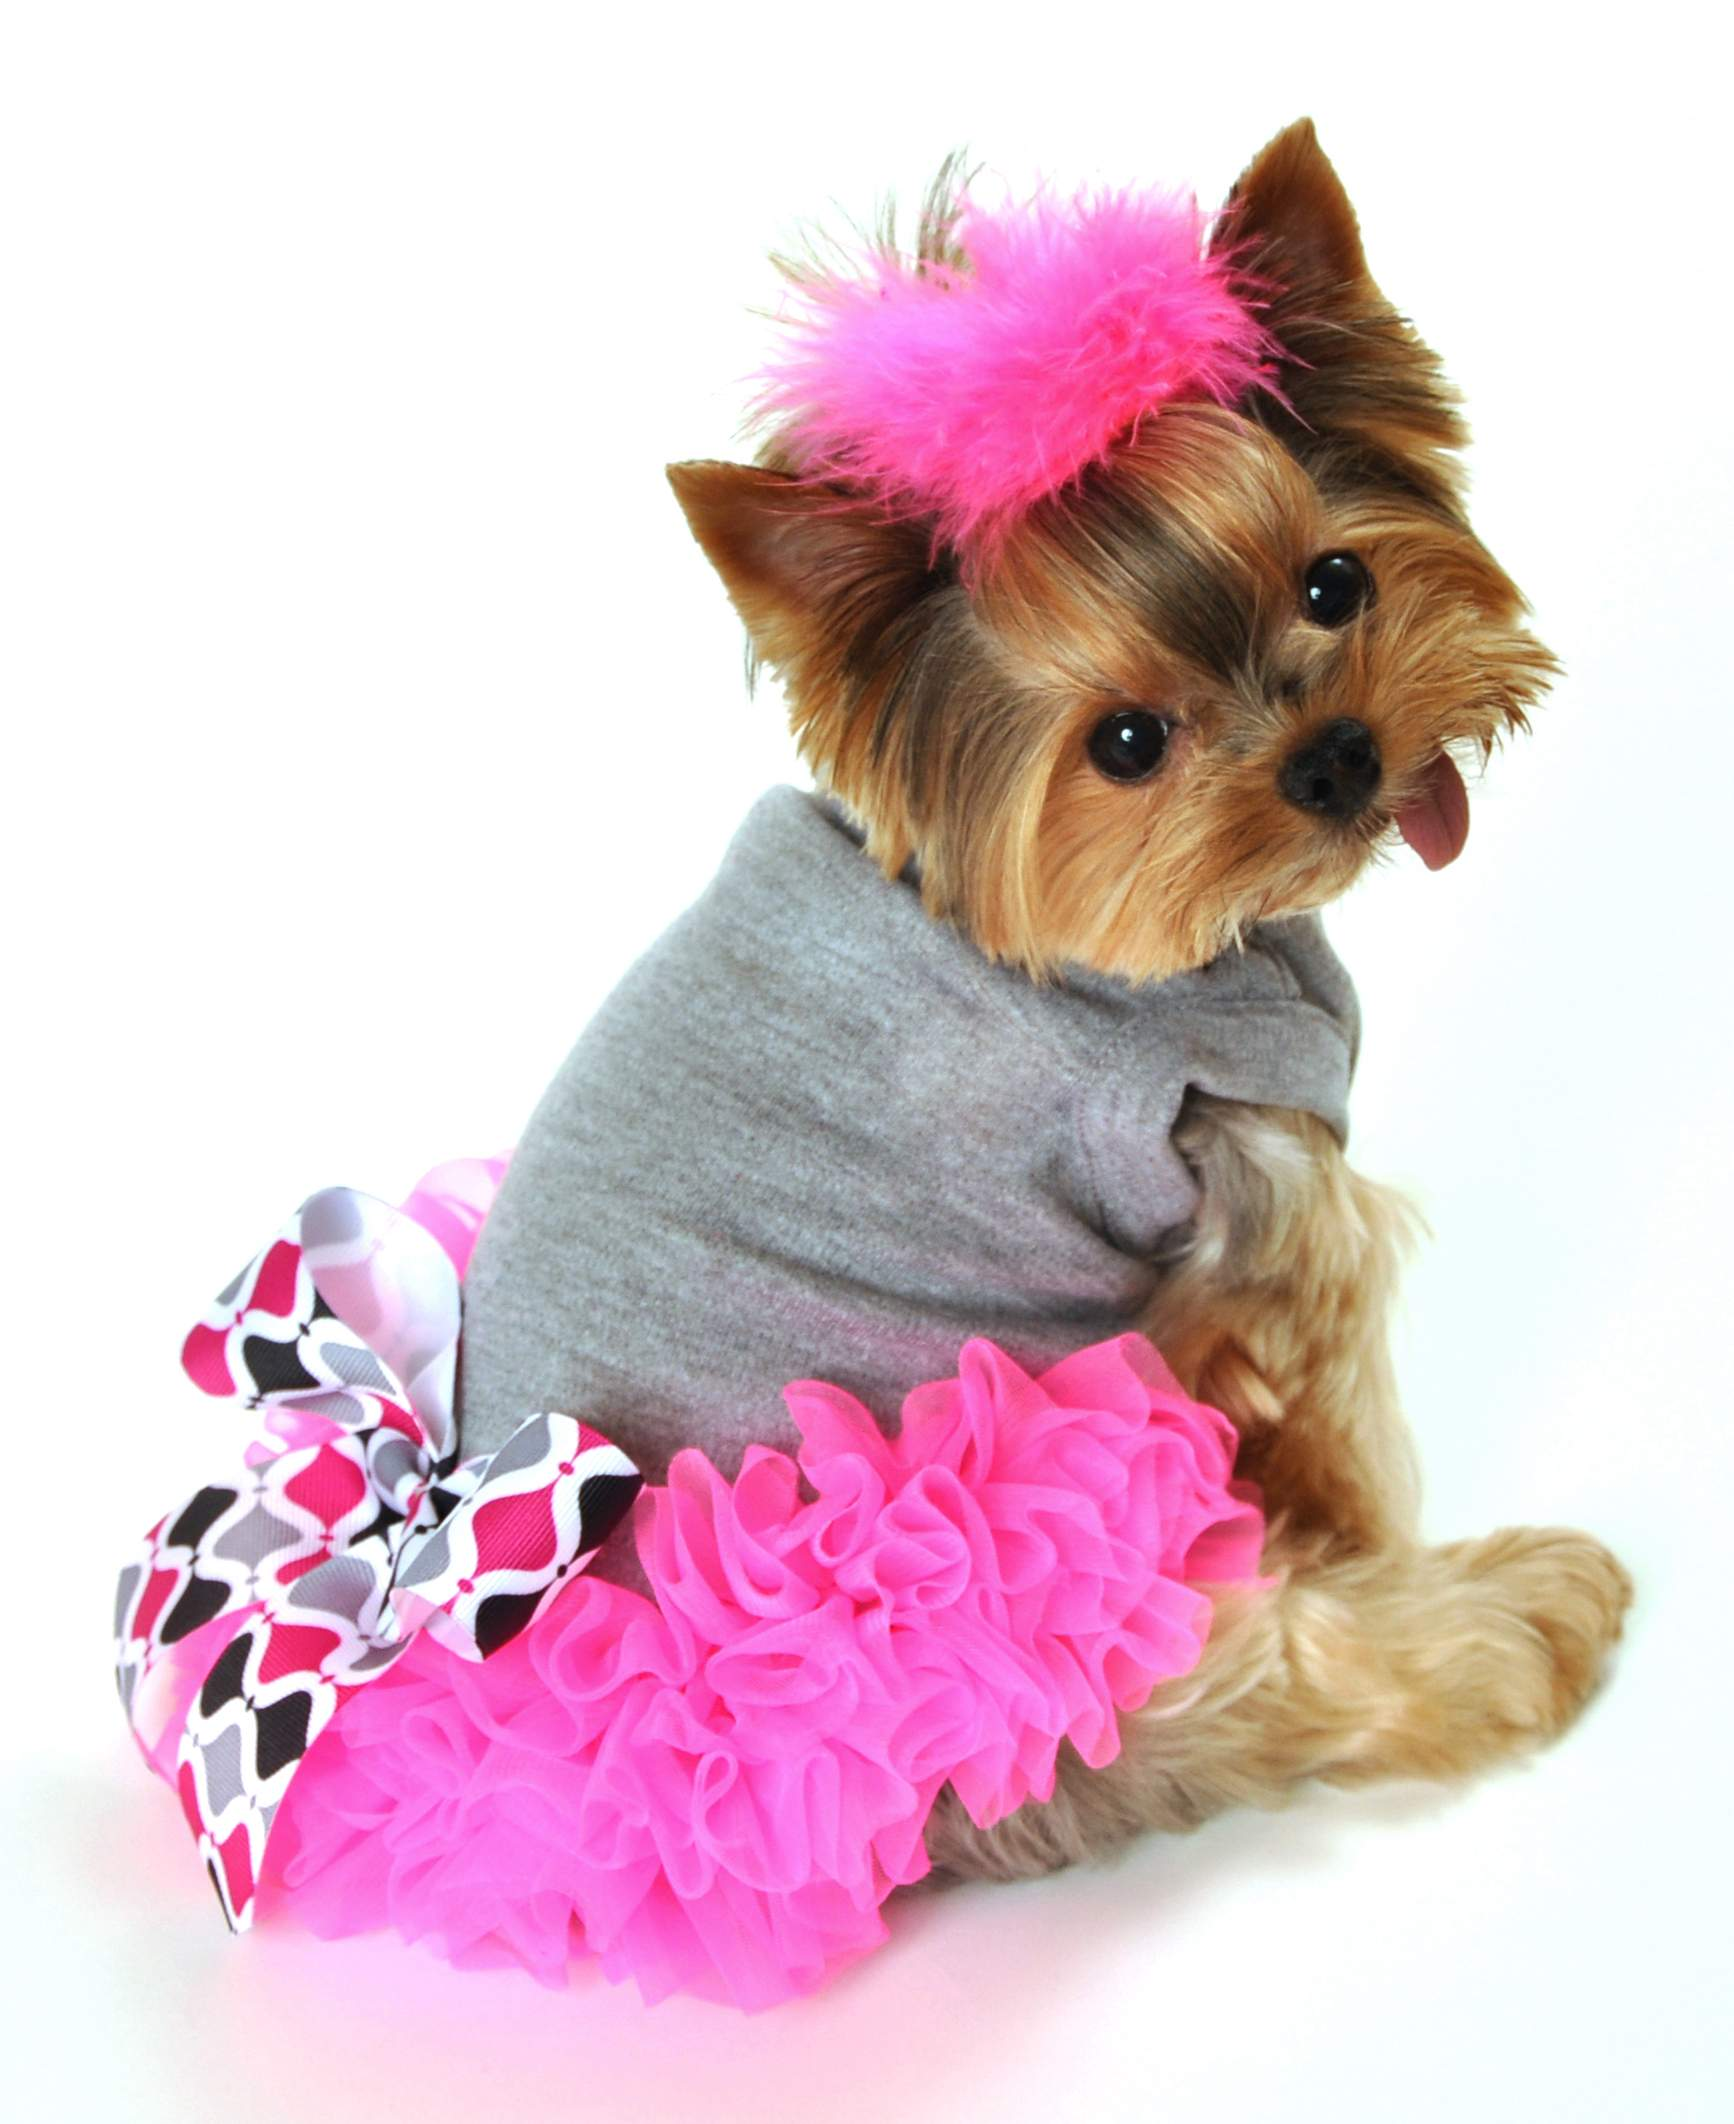 Dog Dresses photo - 1